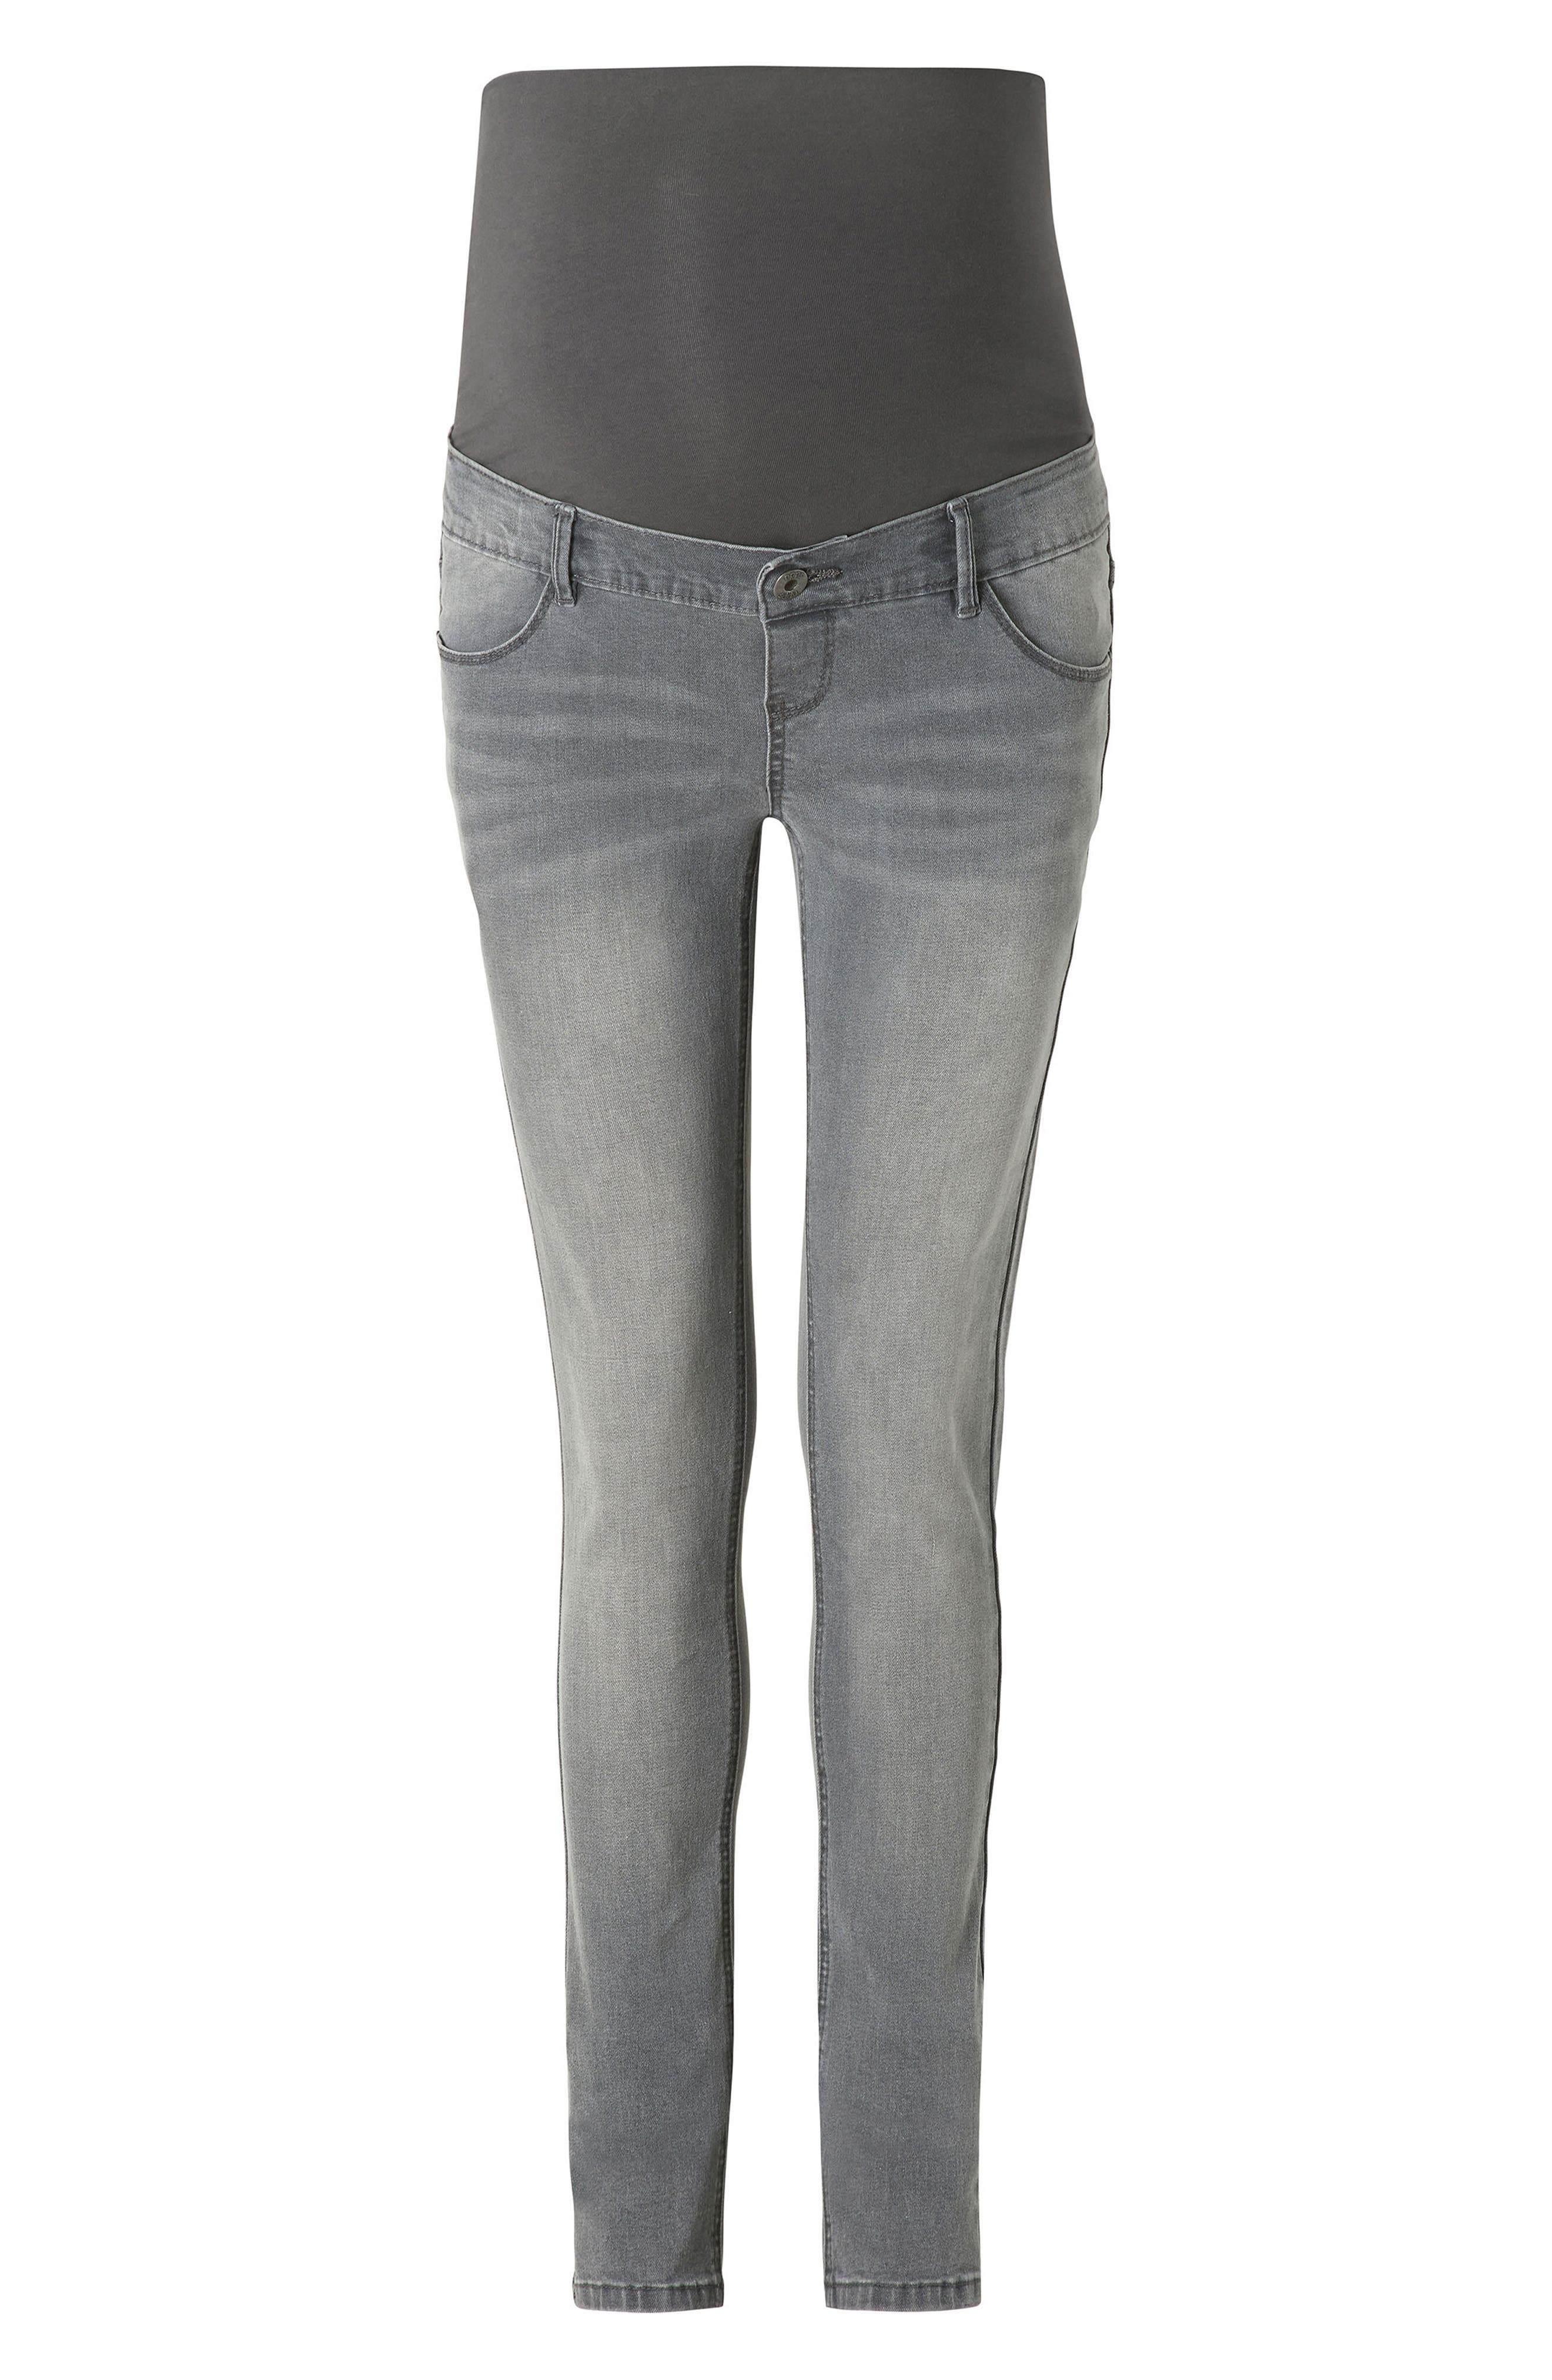 Avi Skinny Maternity Jeans,                         Main,                         color, Grey Denim